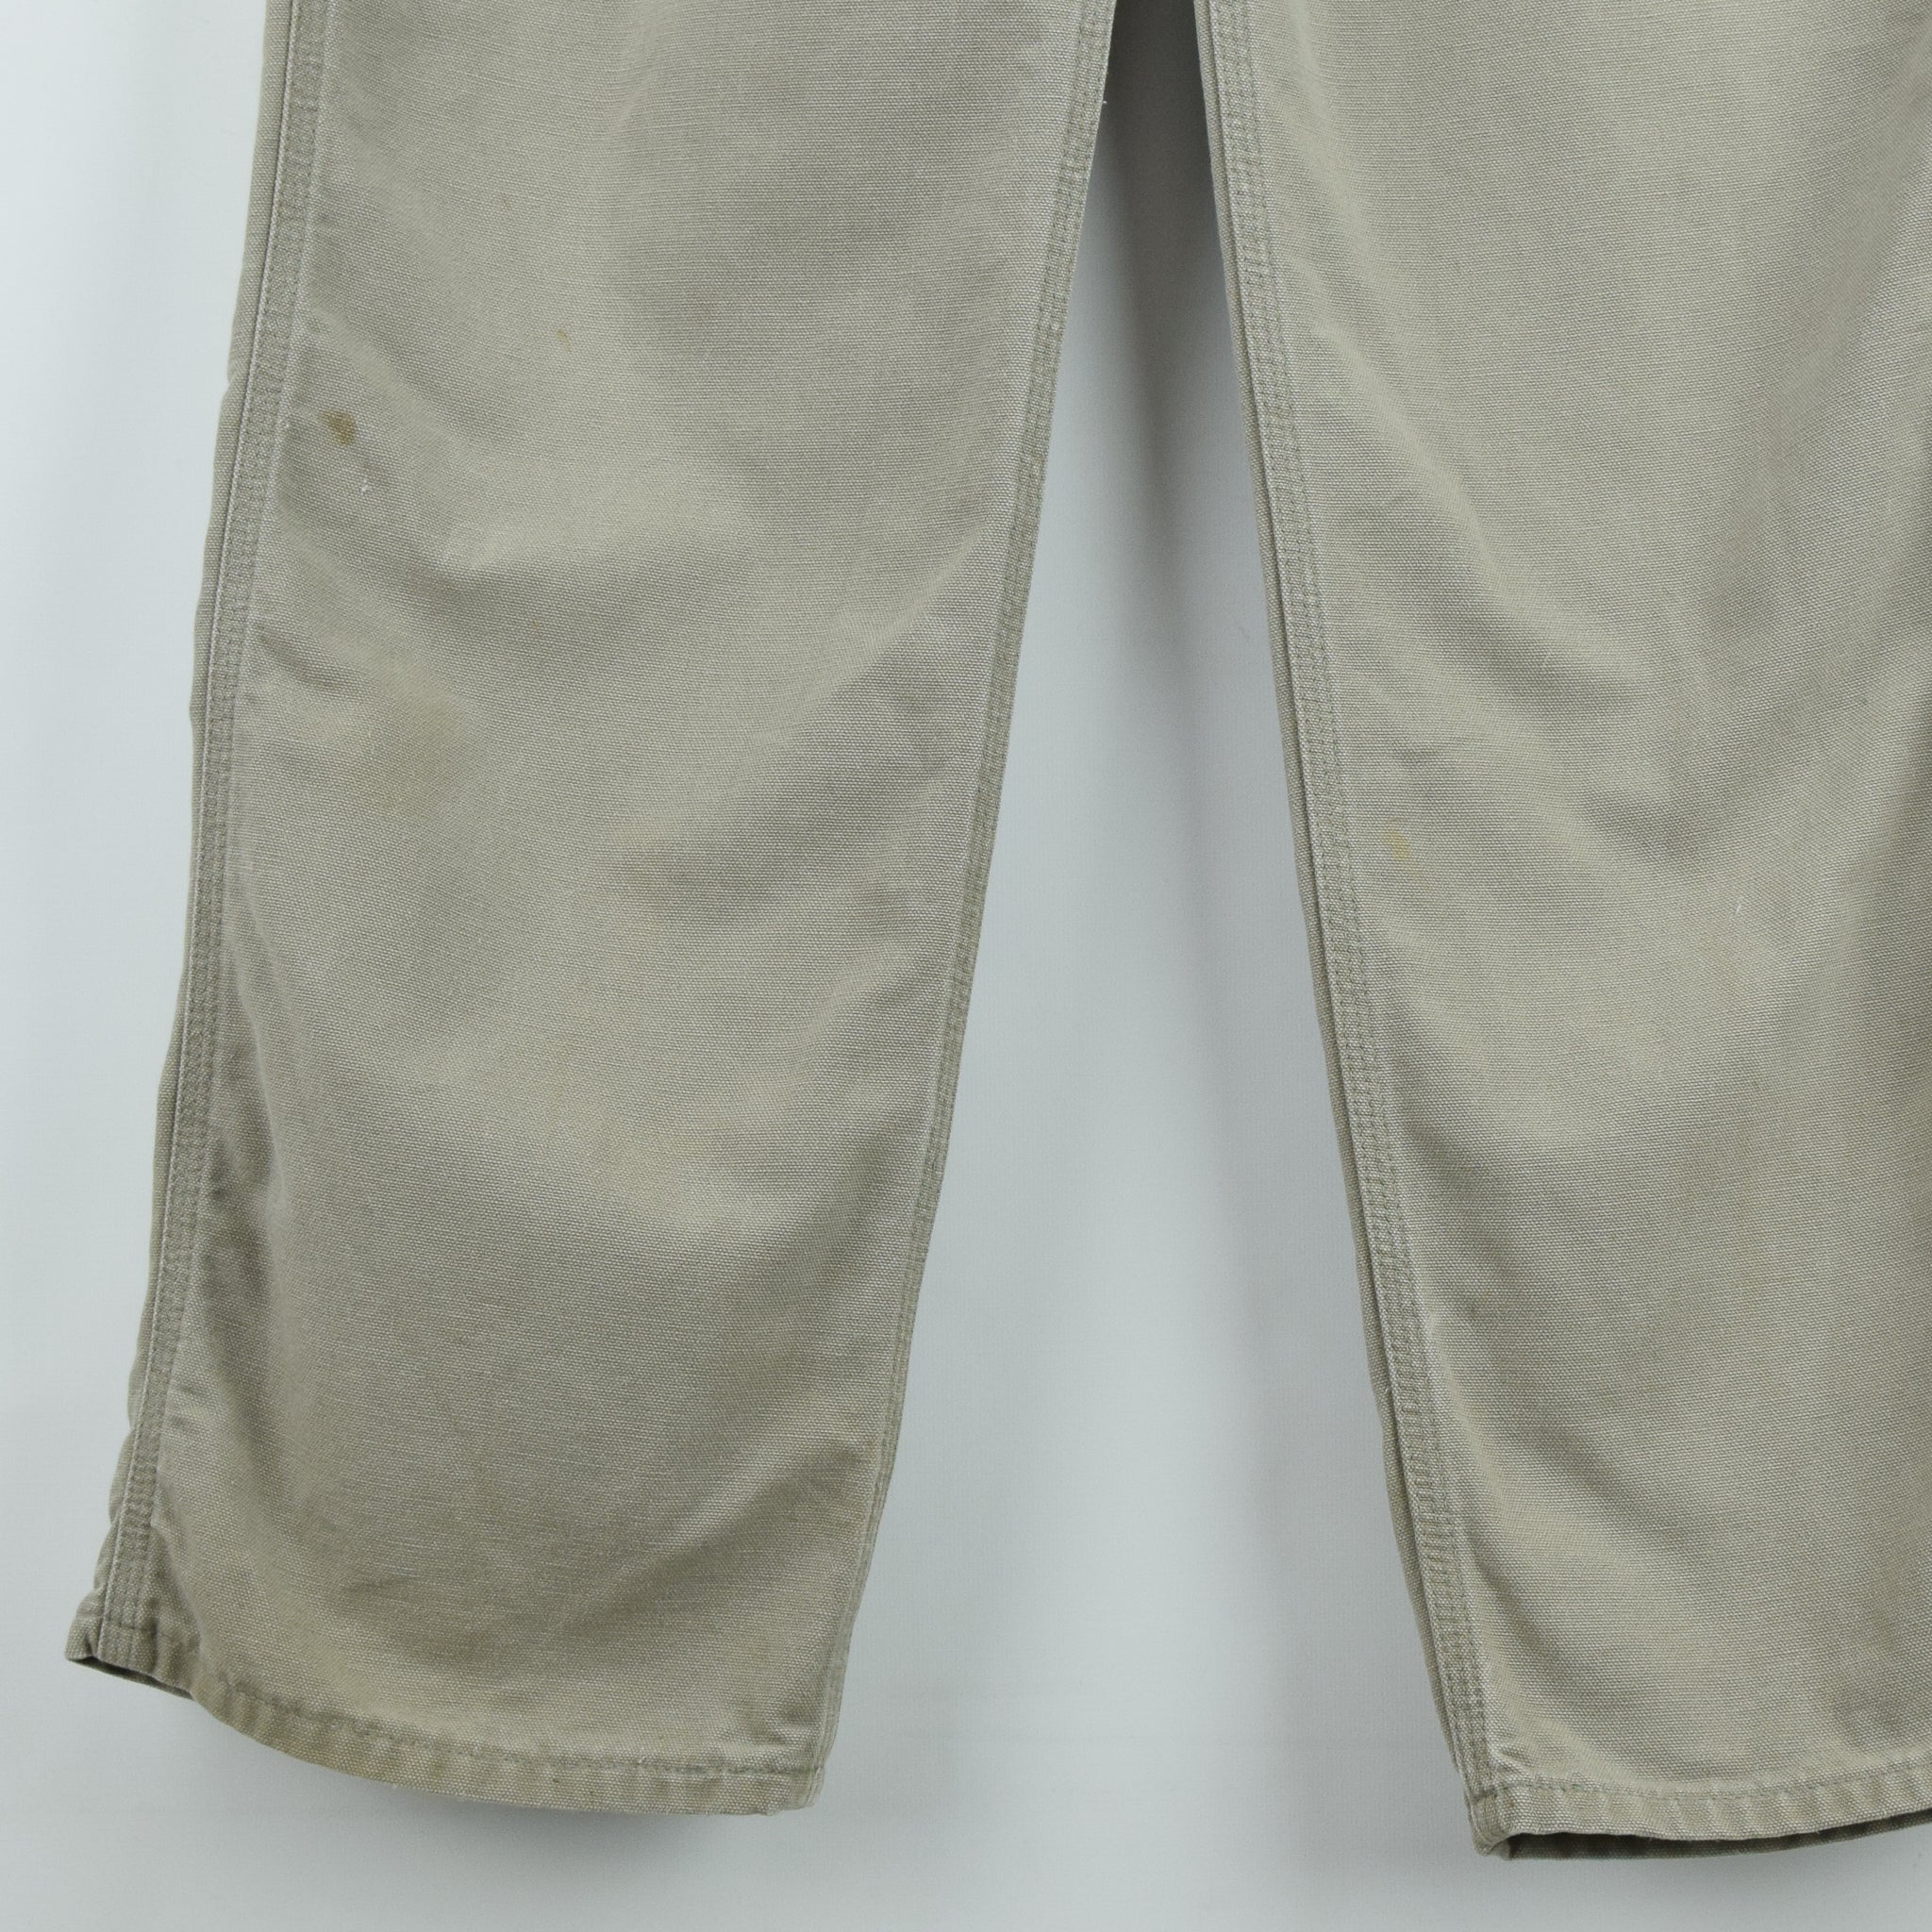 Vintage Carhartt Stone Duck Canvas Utility Work Cargo Pant 32 W 34 L front hem